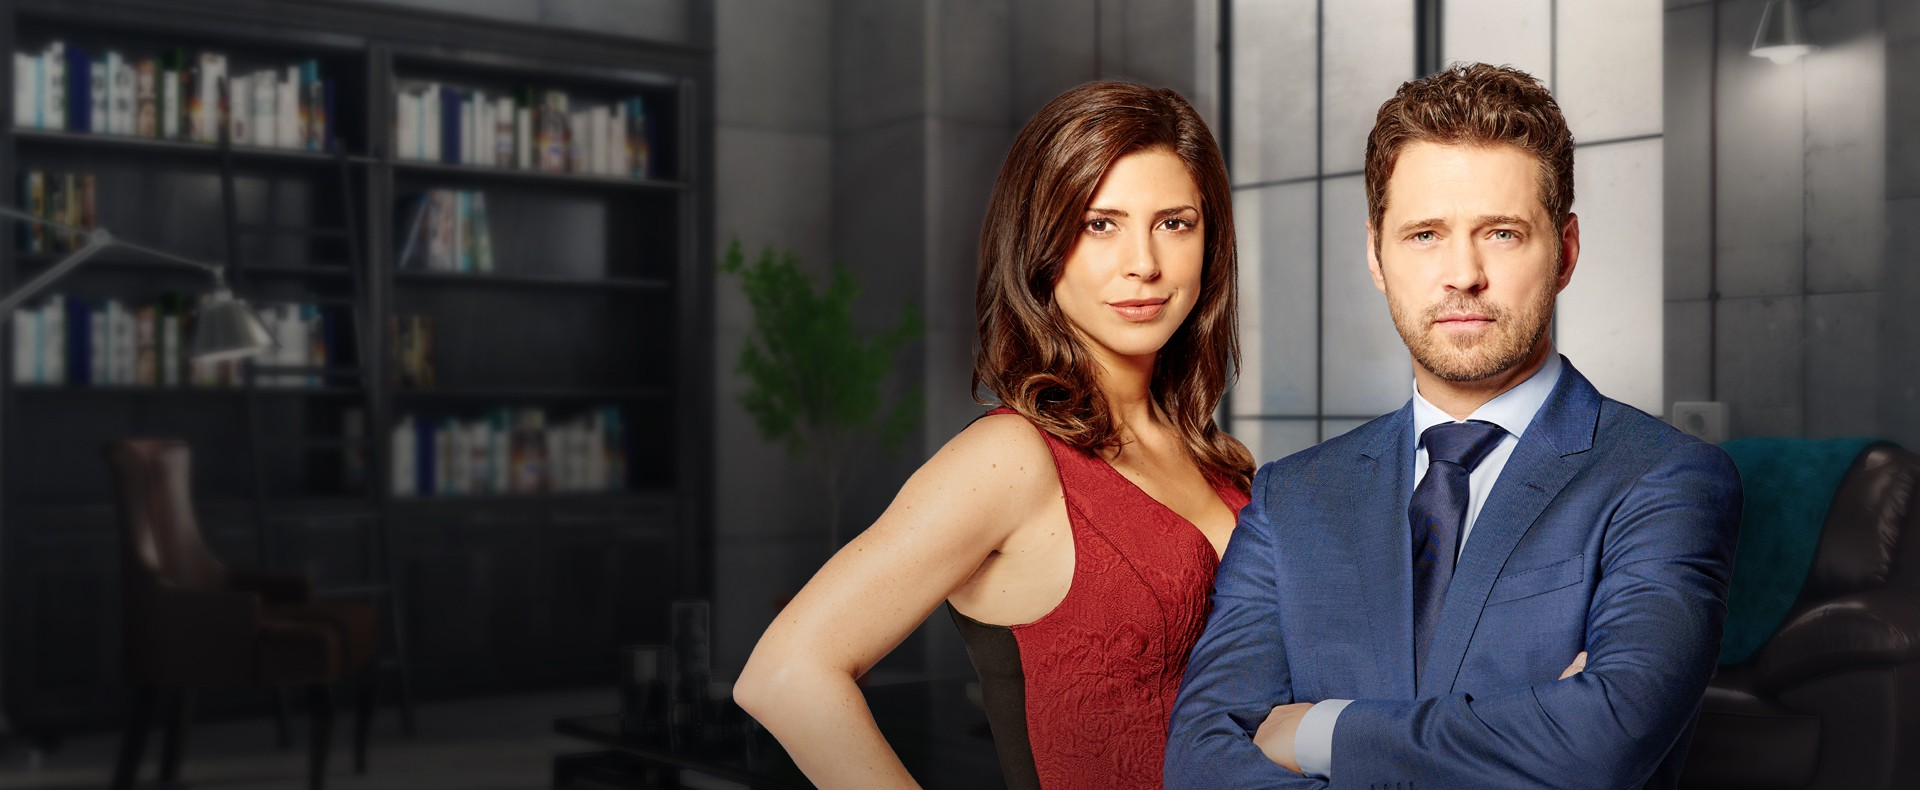 Private Eyes TV Show on ION: Ratings (Cancel or Season 2